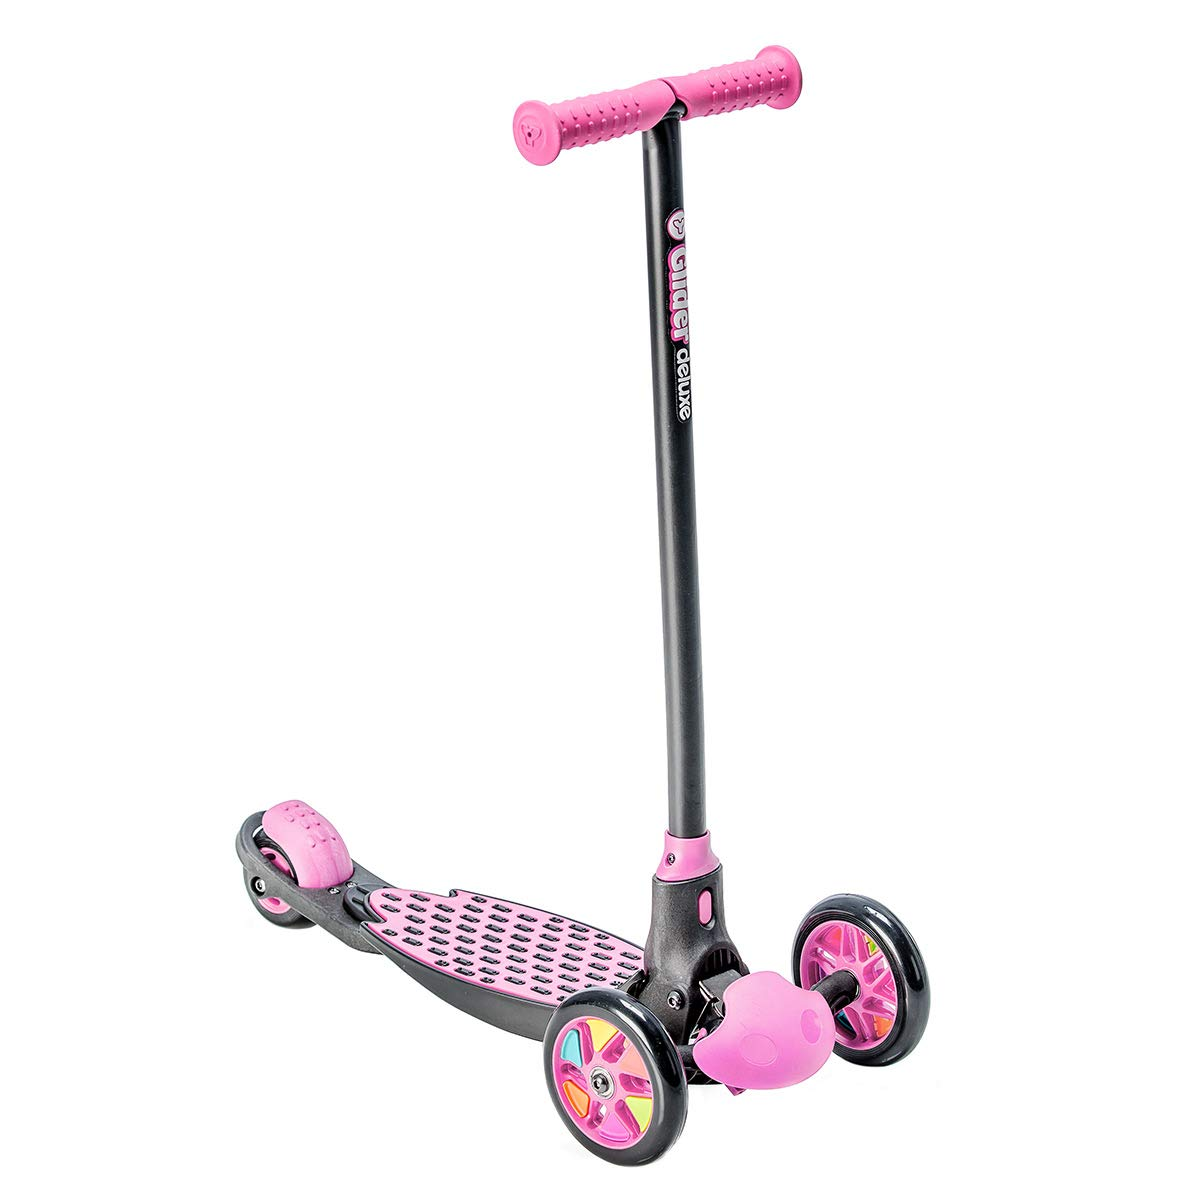 Yvolution Y Glider Deluxe | Three Wheel Kick Scooter for Kids with Safety Brake for Children Ages 3+ Years (Pink) by Yvolution